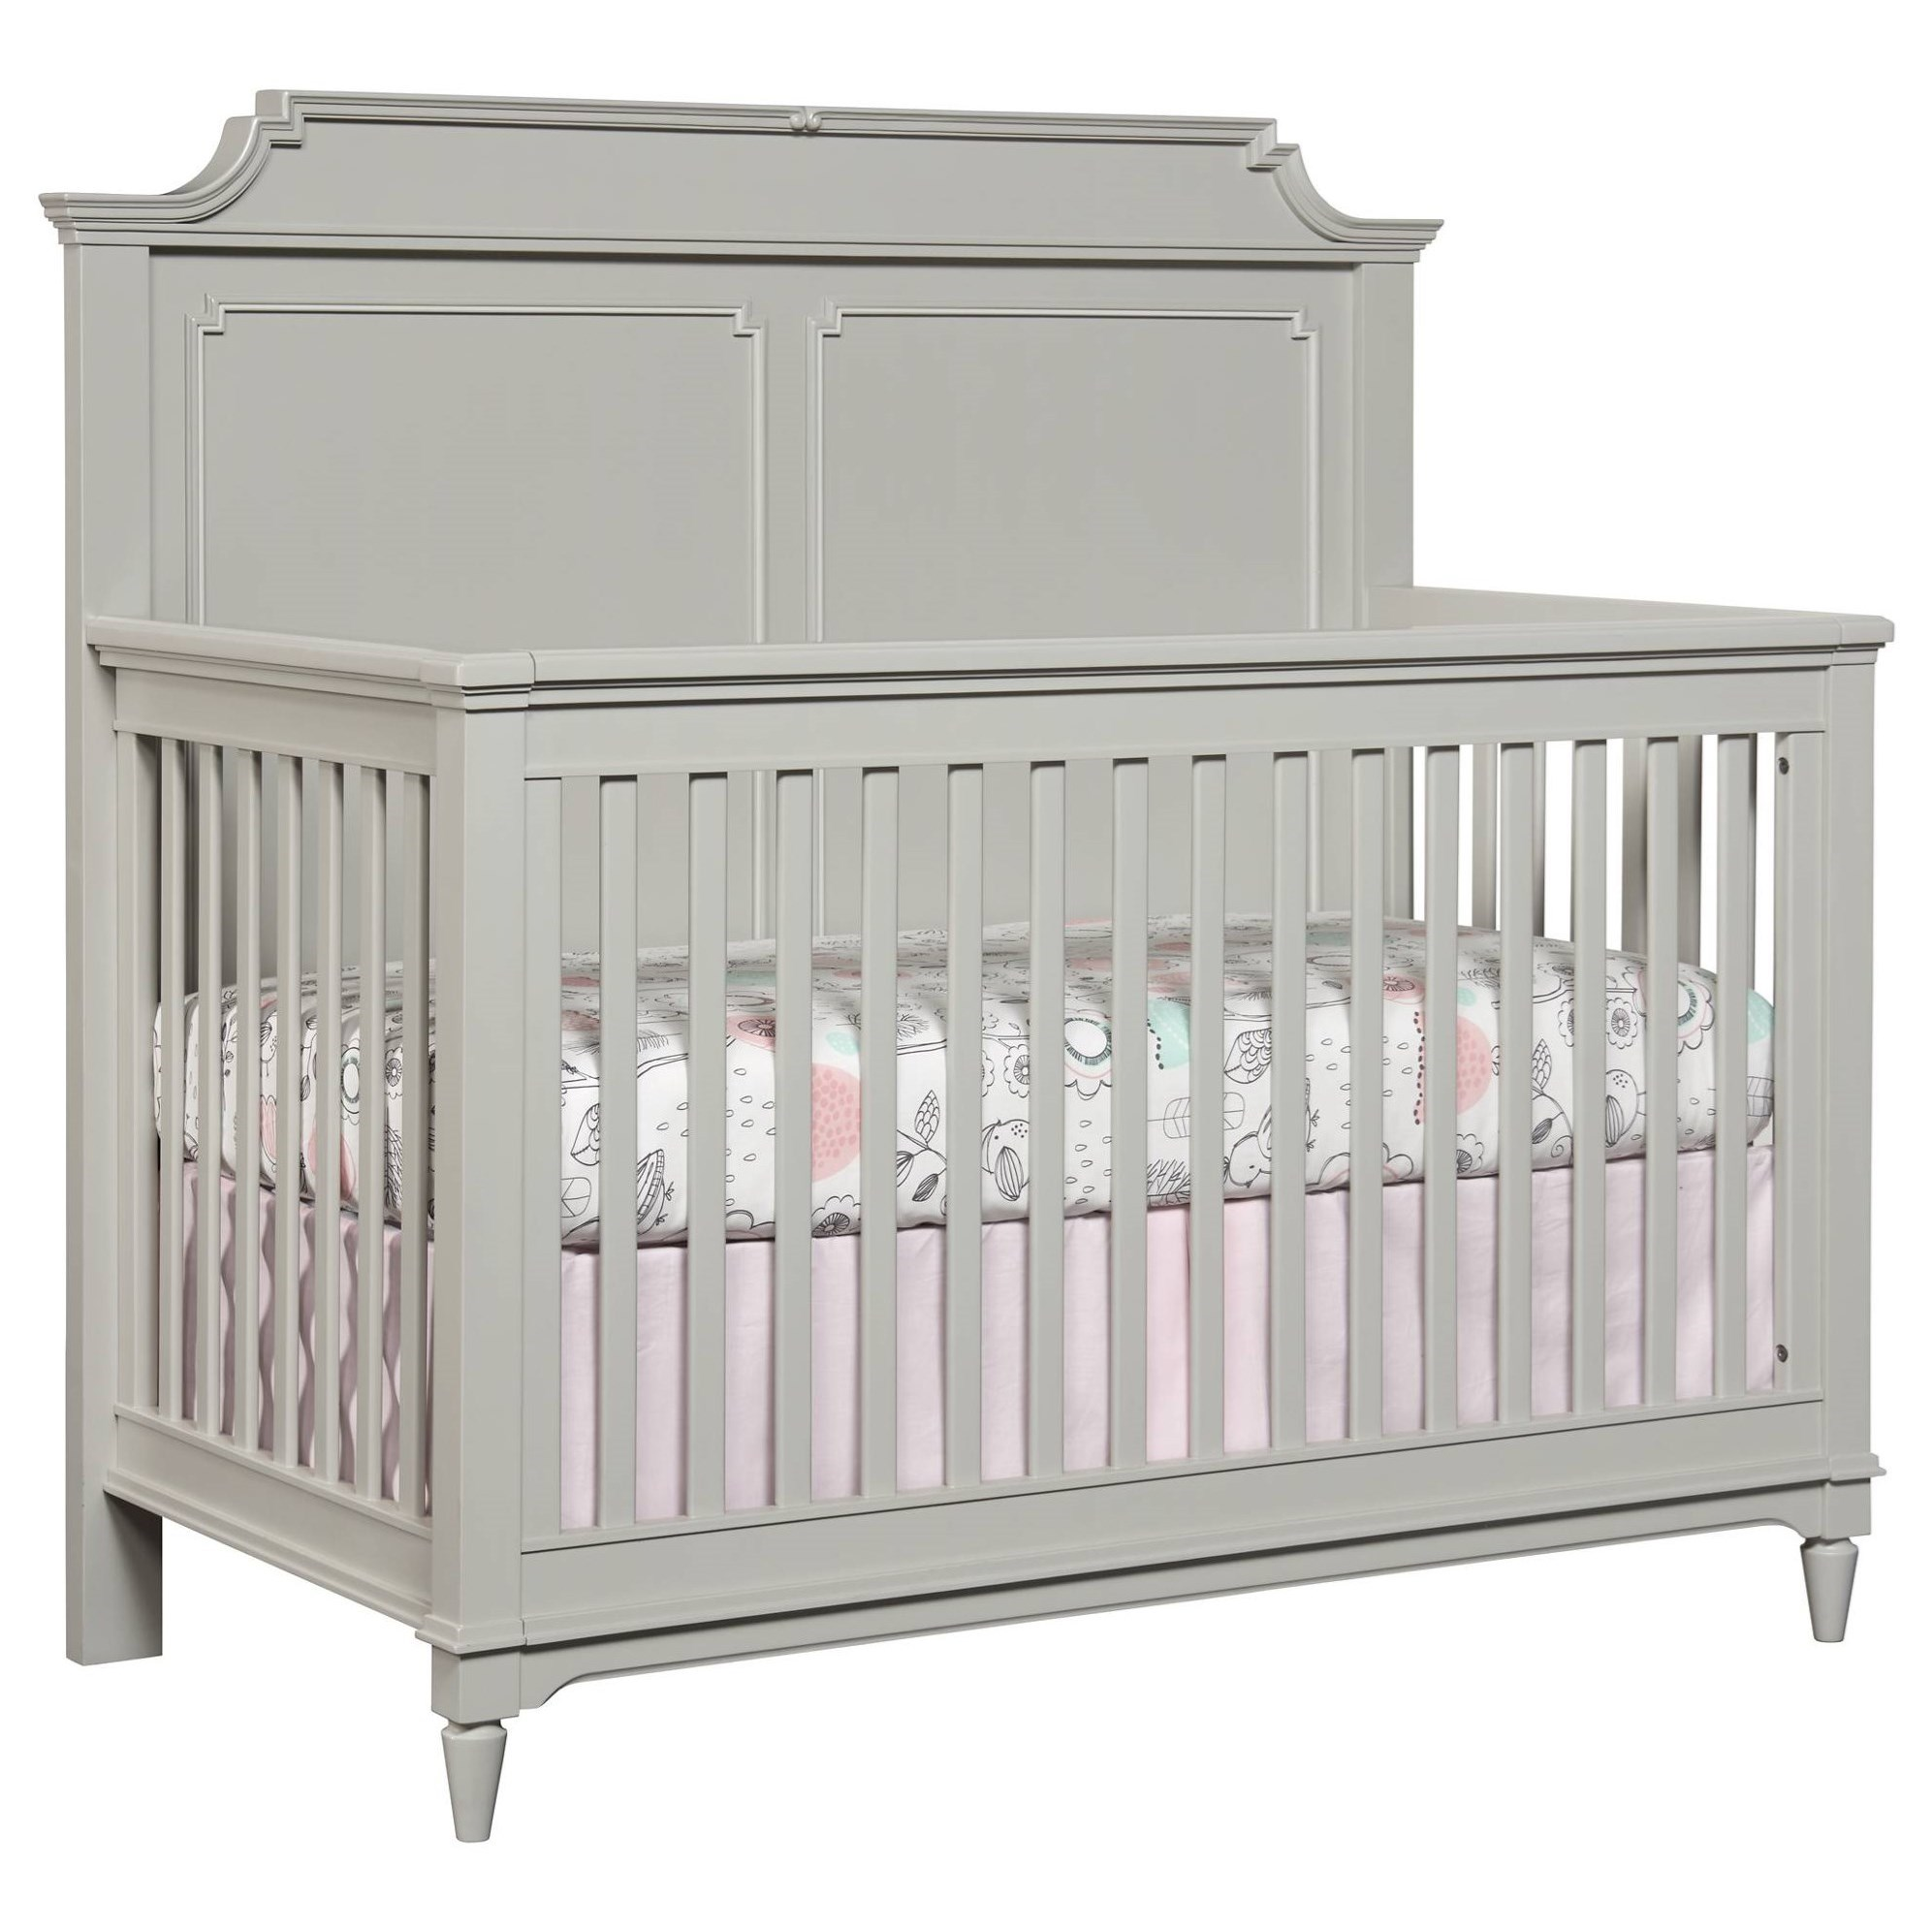 Stone & Leigh Furniture Clementine Court Built To Grow Crib - Item Number: 537-53-50